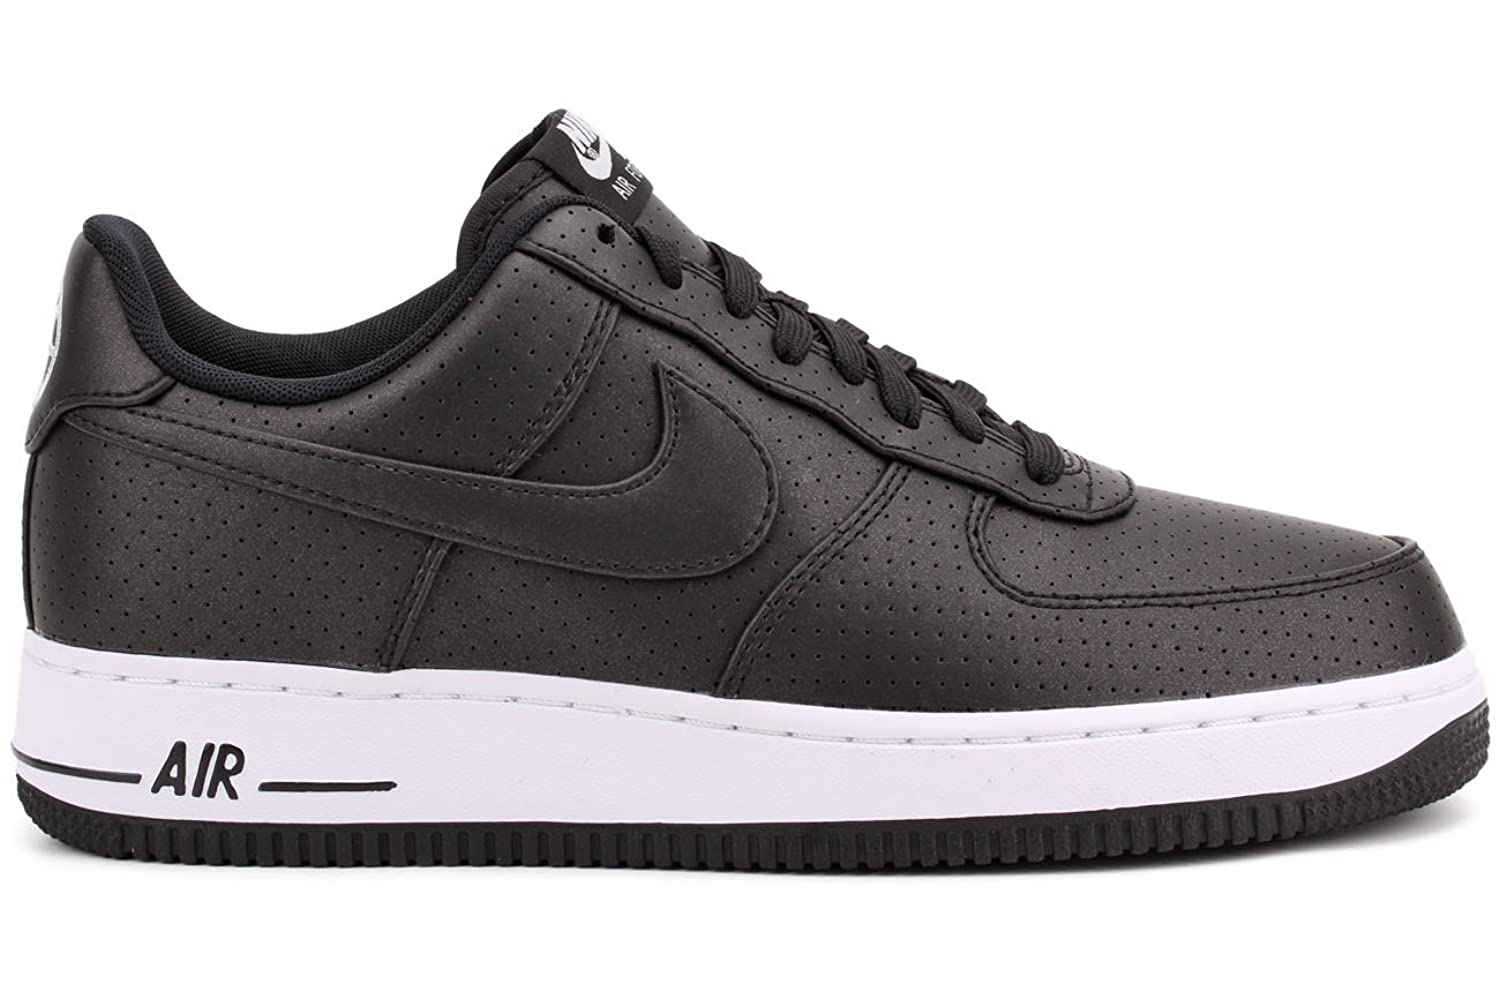 durable modeling Nike Air Force 1 '07 LV8 Men's Shoes Black